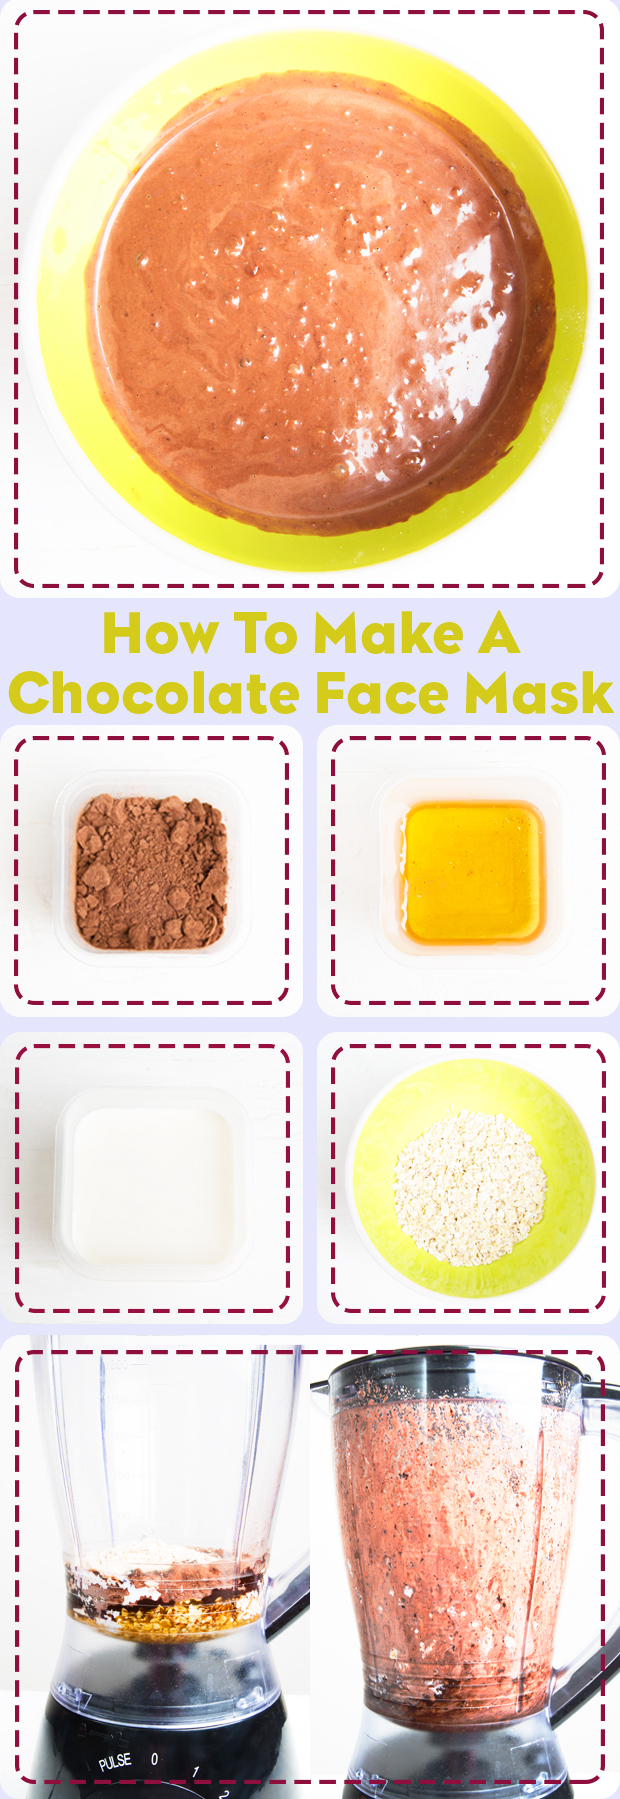 How to make a chocolate face mask